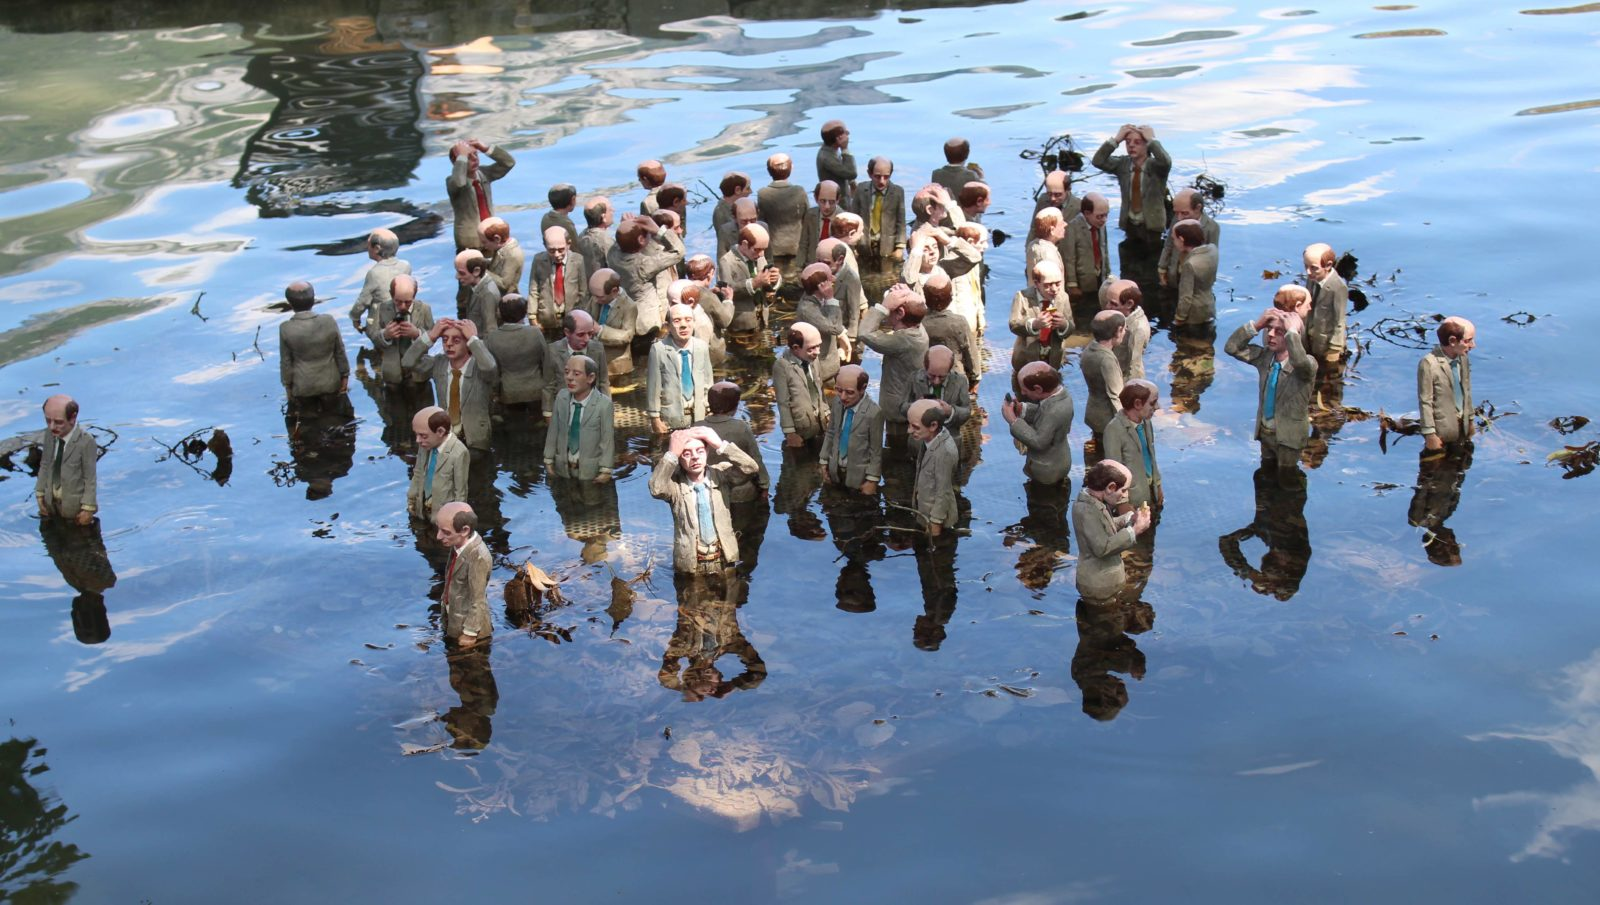 Annecy 2019 Follow the leaders - Isaac Cordal :